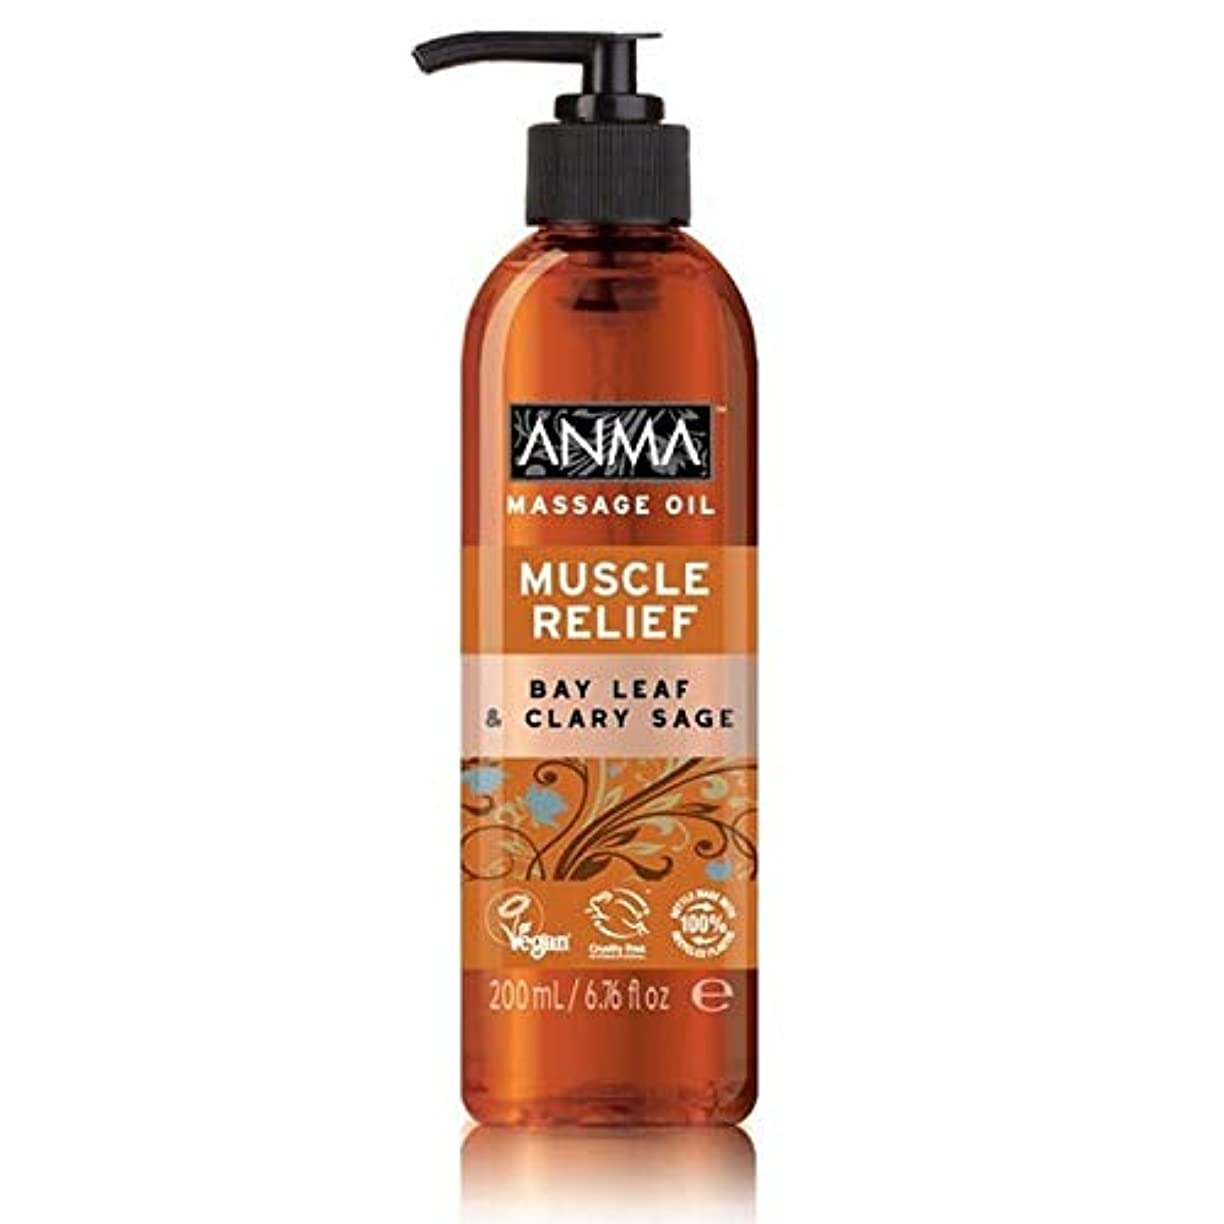 [Anma ] あんまマッサージオイル筋肉緩和 - Anma Massage Oil Muscle Relief [並行輸入品]